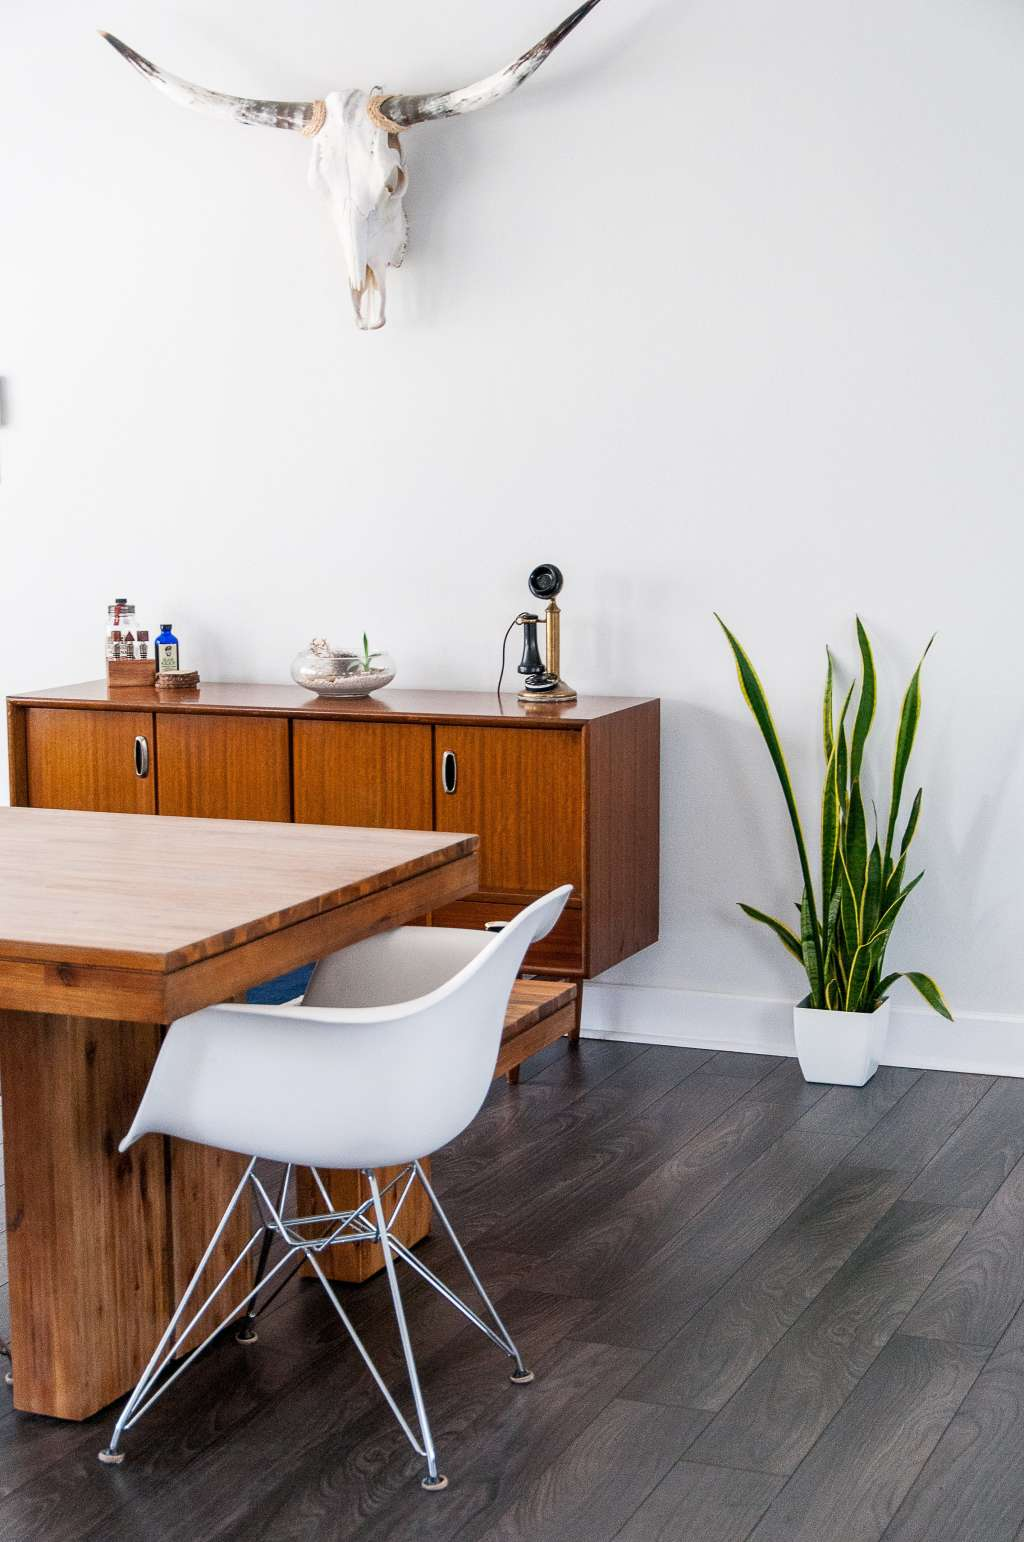 House Tour: A Modern, Minimal Marfa-Inspired Apartment